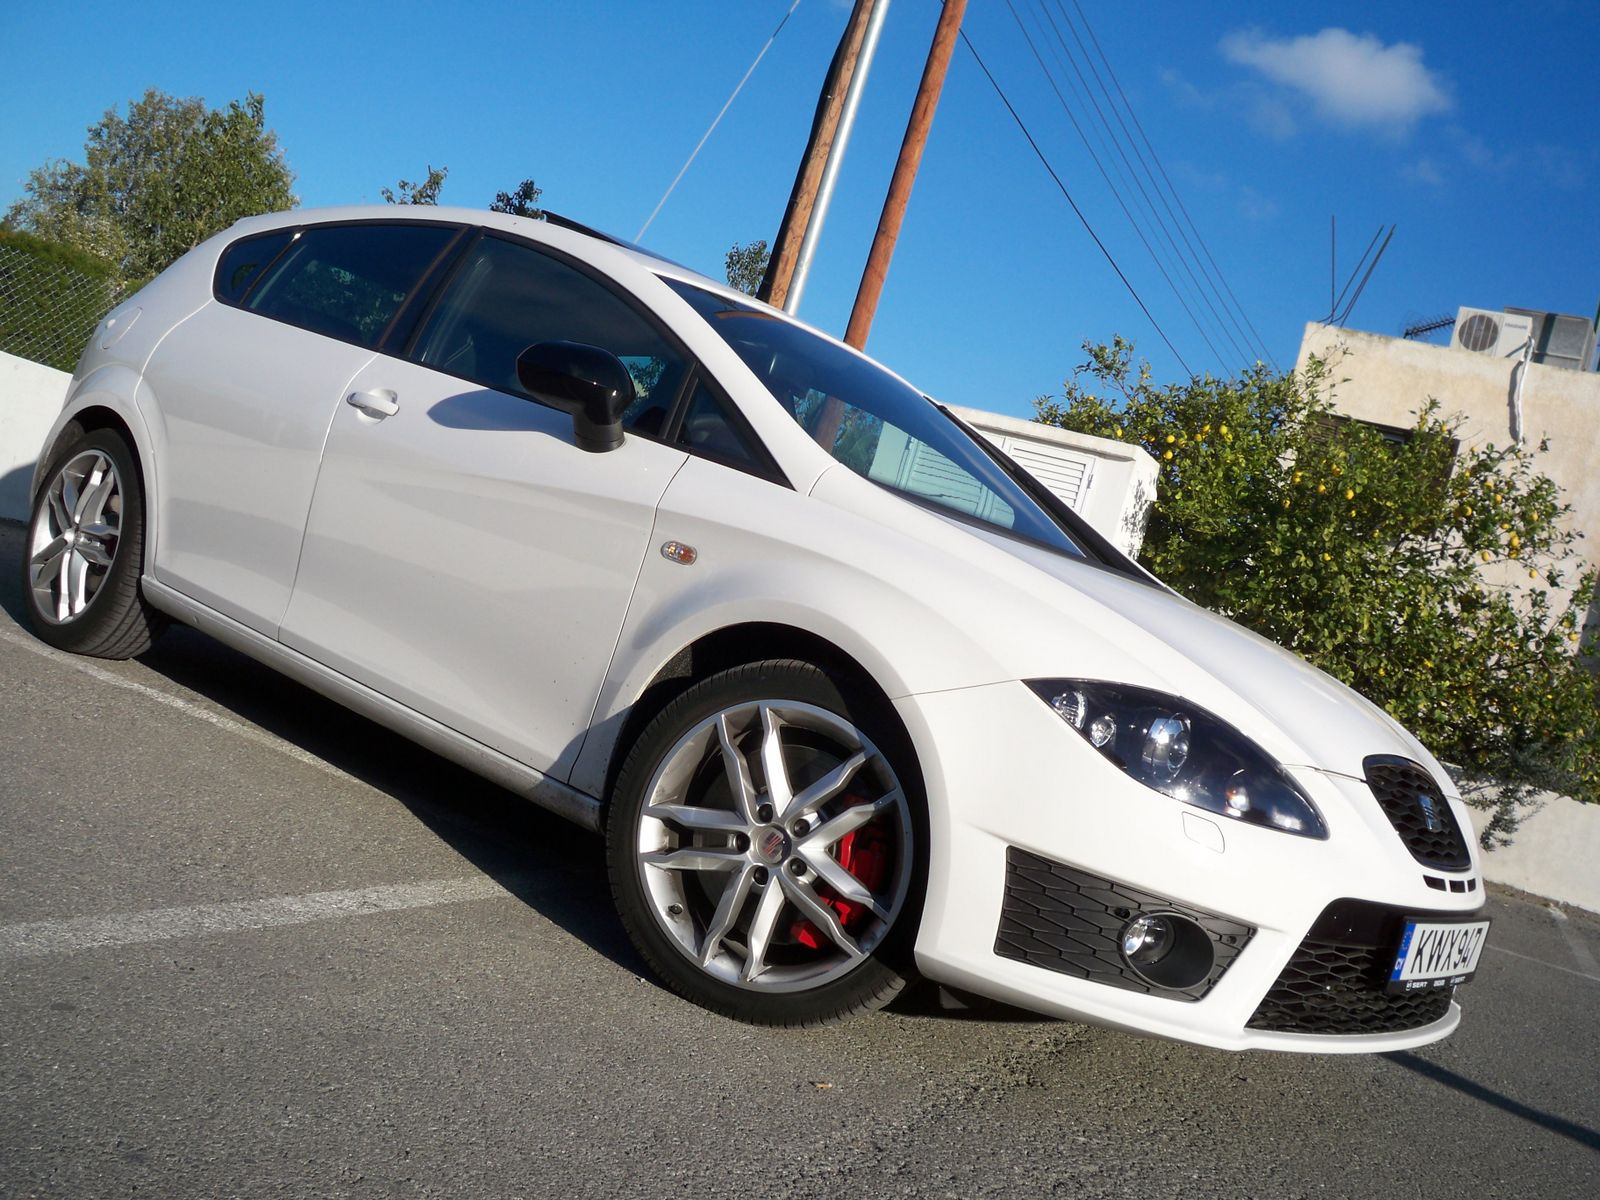 seat leon cupra mk2 1p facelift 2009 cyprus seat leon. Black Bedroom Furniture Sets. Home Design Ideas